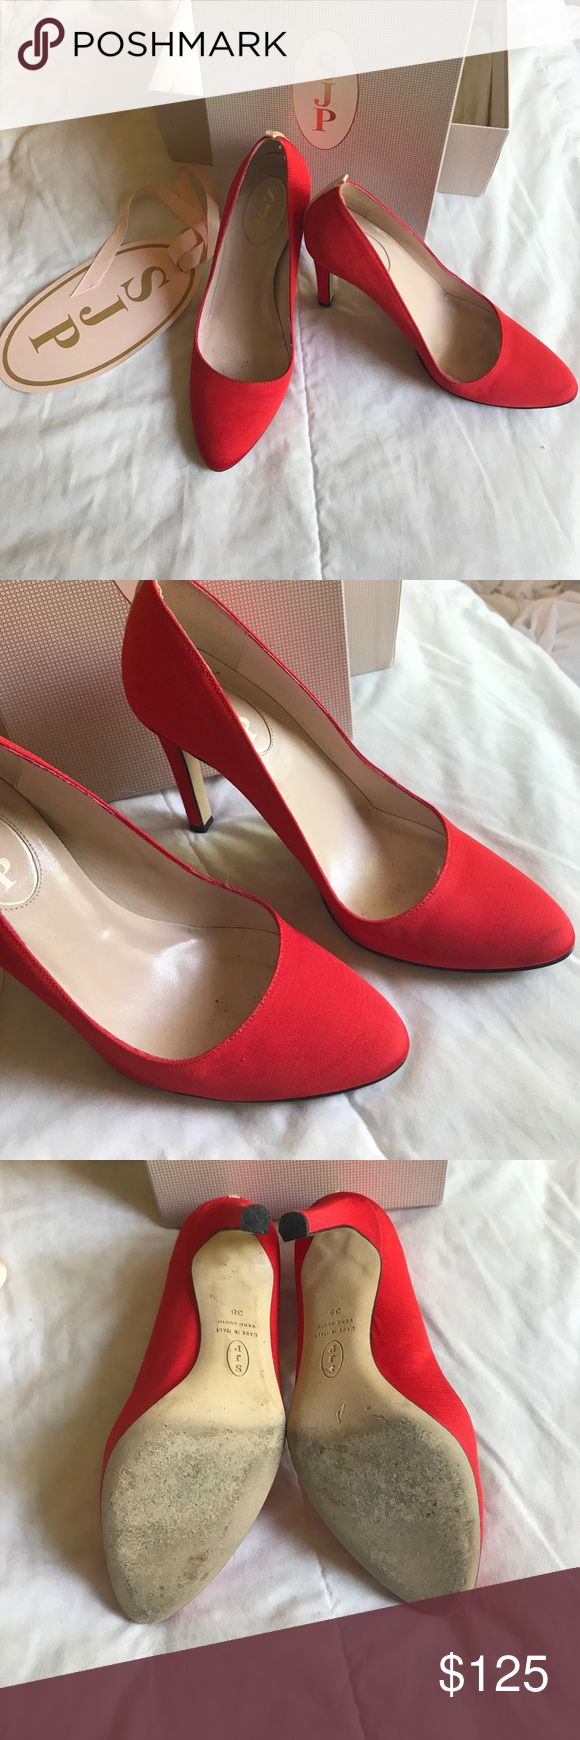 "SJP Lady pumps Size 38 (8) Lady pumps in red. Worn only a few times and has a small scuff mark on the tip of the right toe (have not tried to remove it with cleaner). Heal height is 4"". Material is grosgrain with the signature grosgrain backing. Please only interested buyers. These were purchased at full retail price of $375. Box included. SJP by Sarah Jessica Parker Shoes Heels"